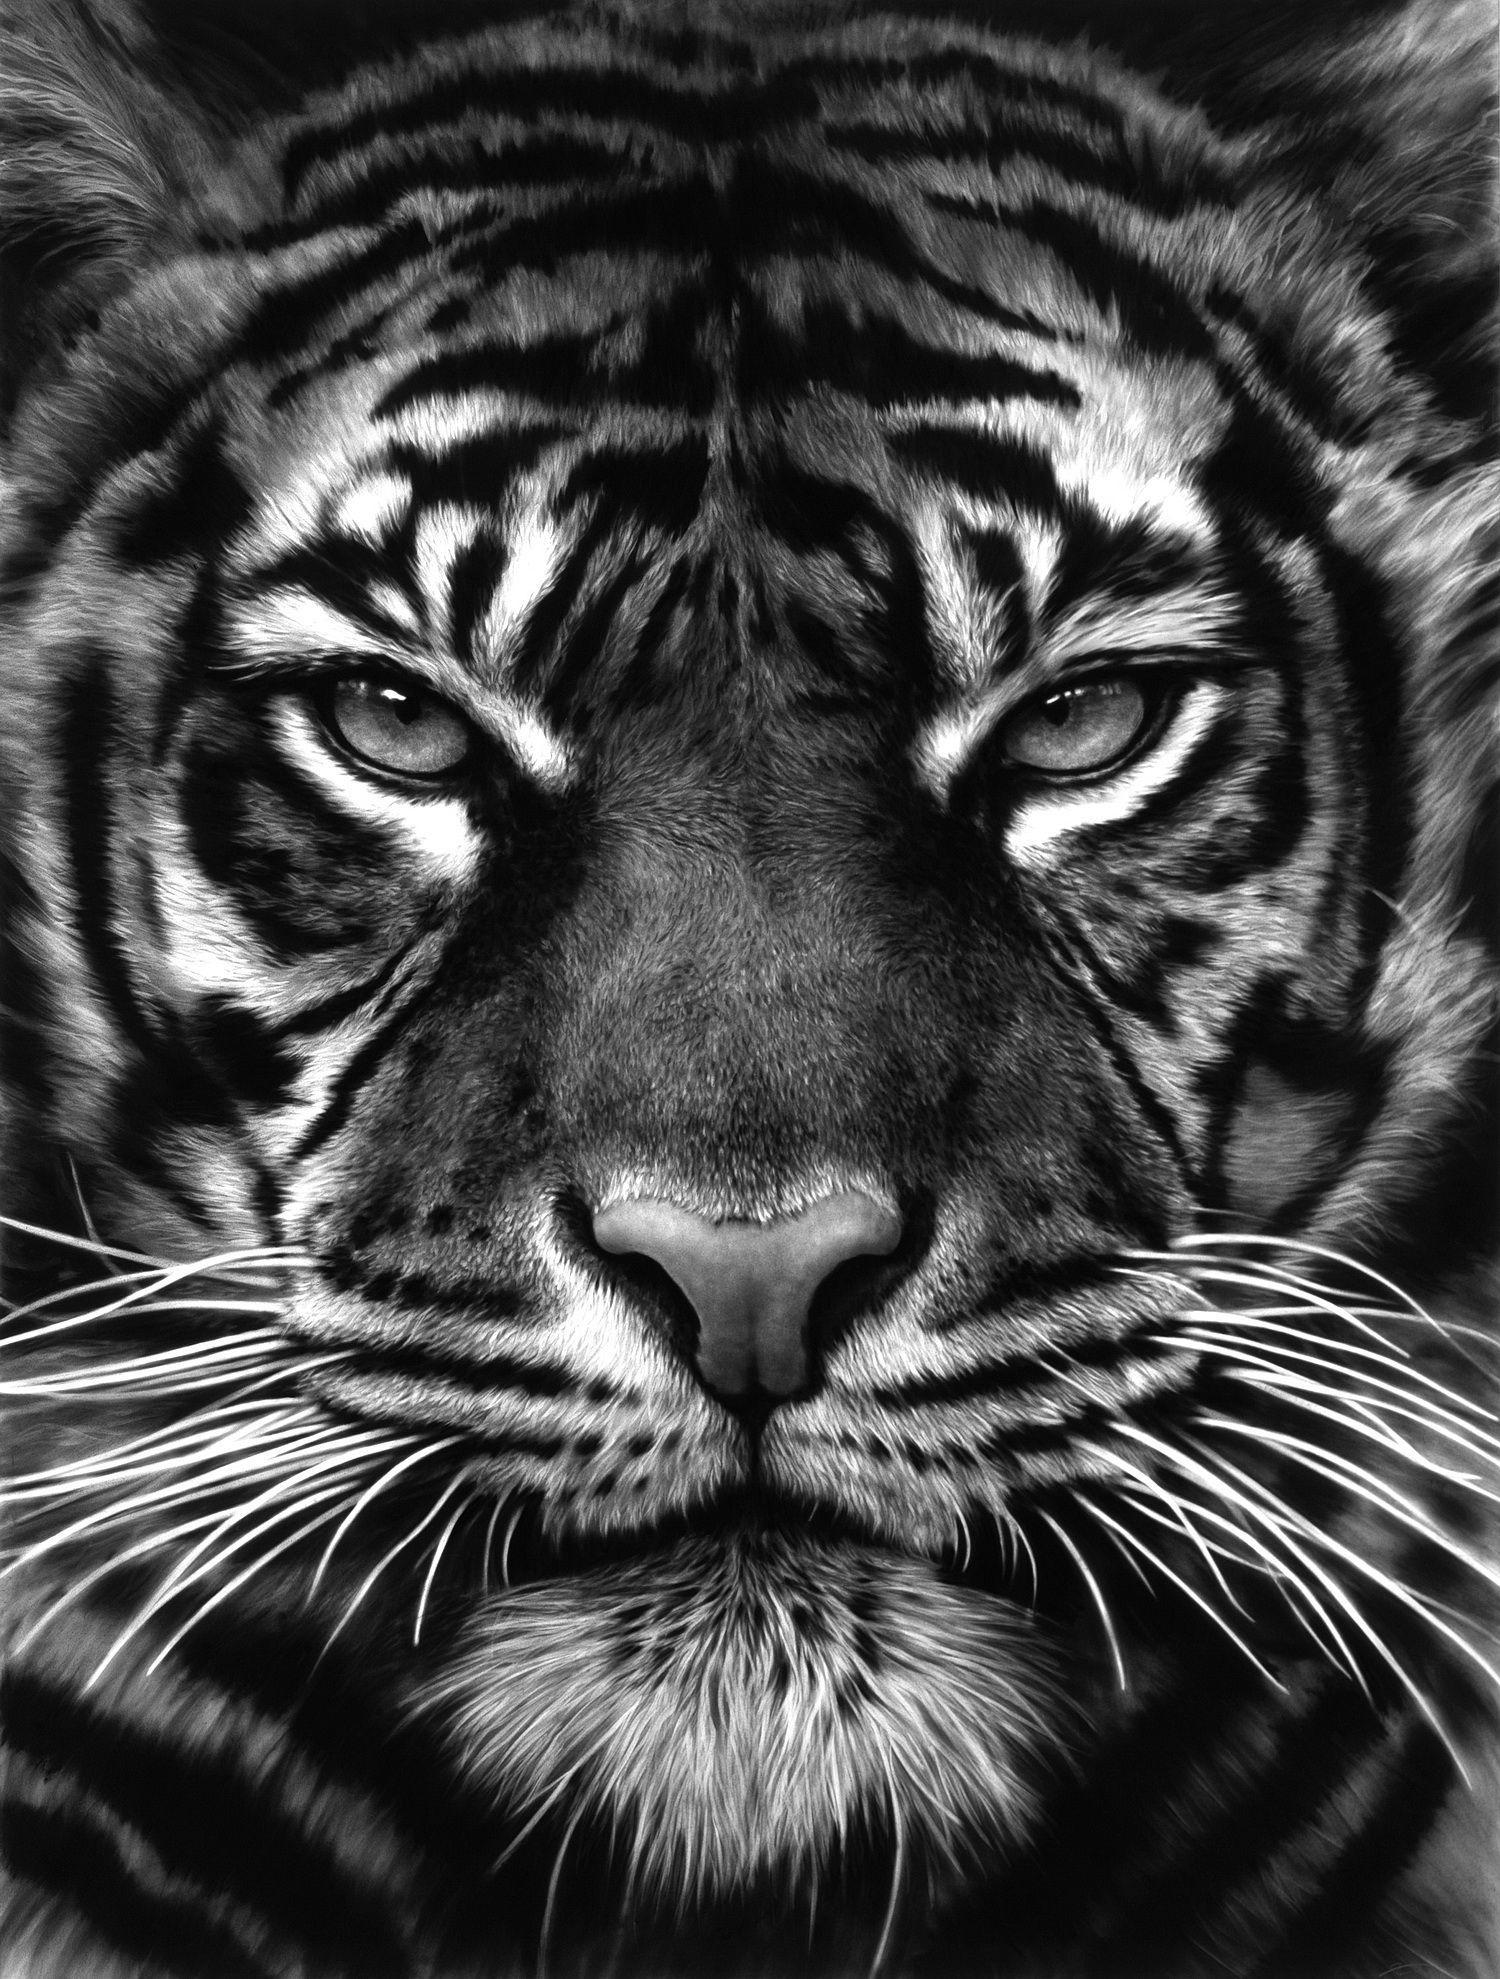 Wishing Everyone Today All Joy Happiness In T Wishing Everyone Today All Joy Happiness In L In 2020 Tiger Fotografie Tiger Tattoodesign Ausgestopftes Tier